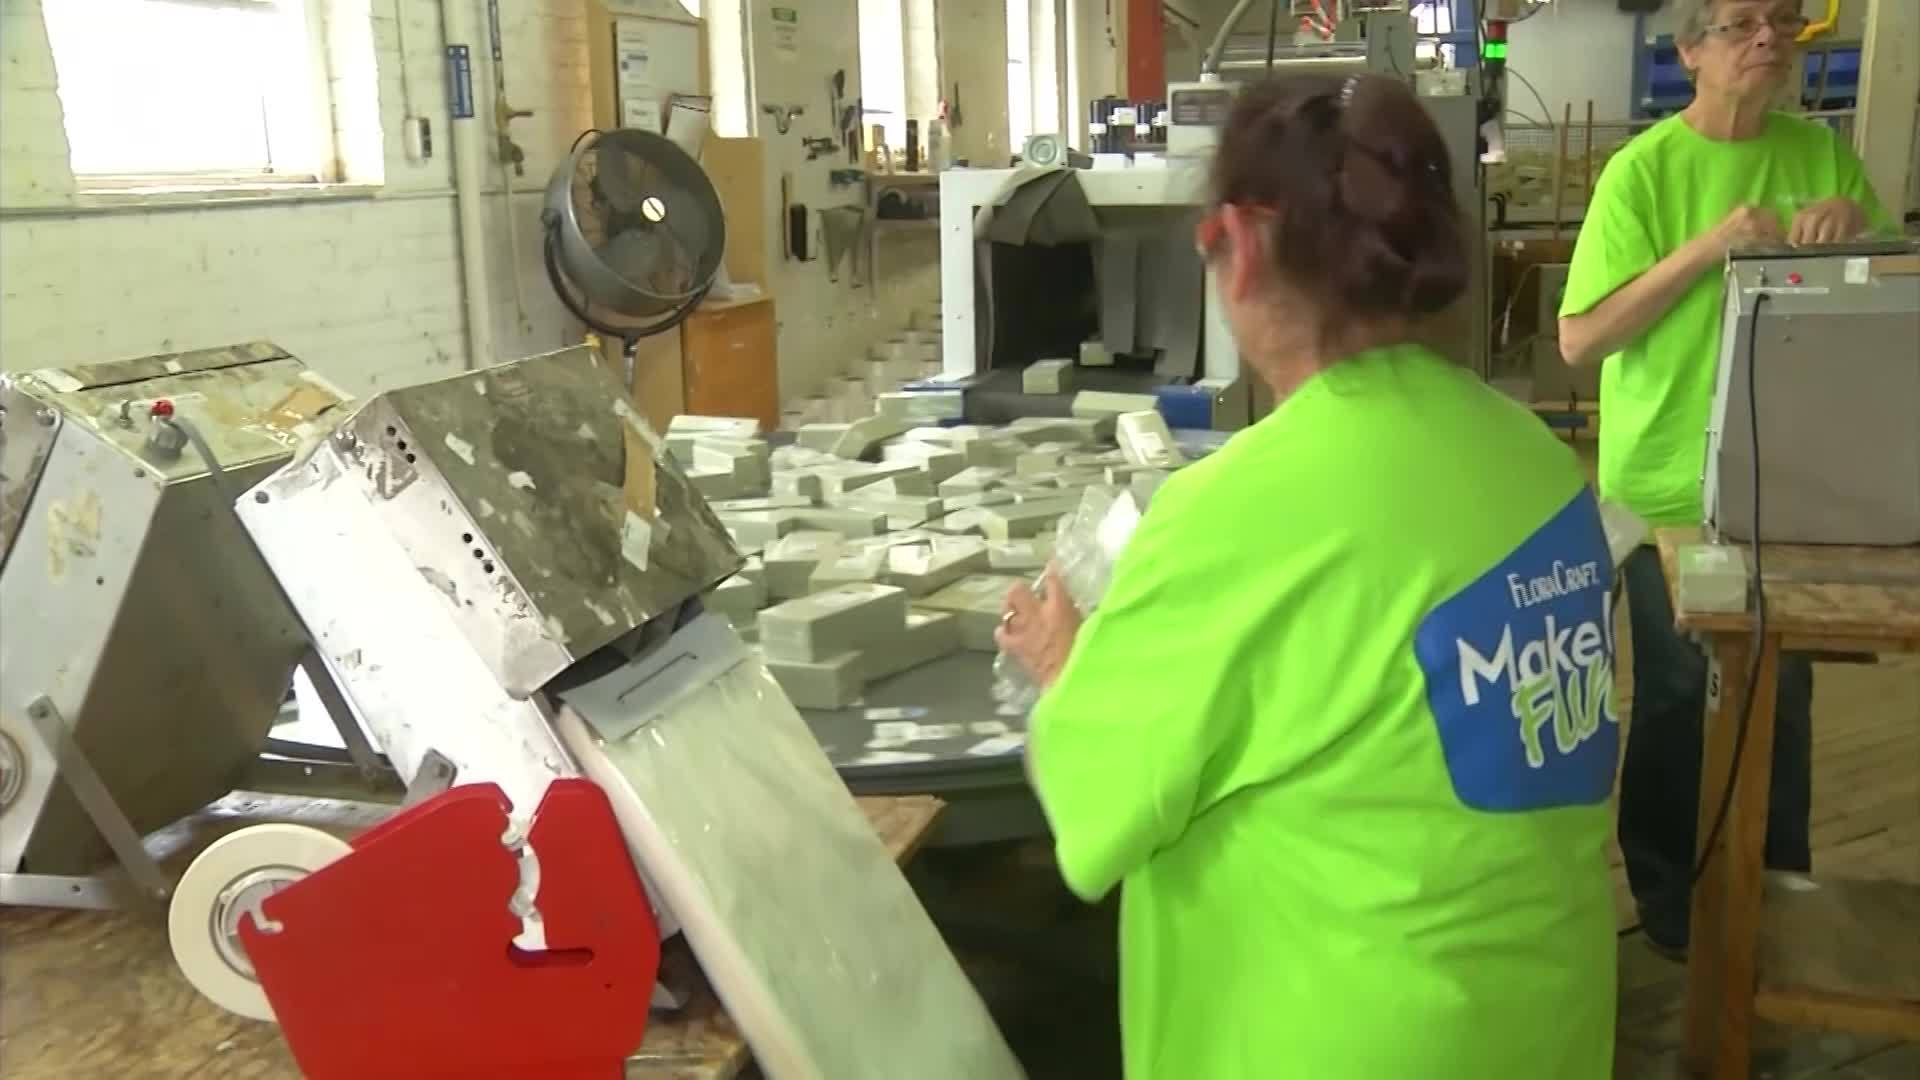 VIDEO: CEO shares $4 million in bonuses with workers